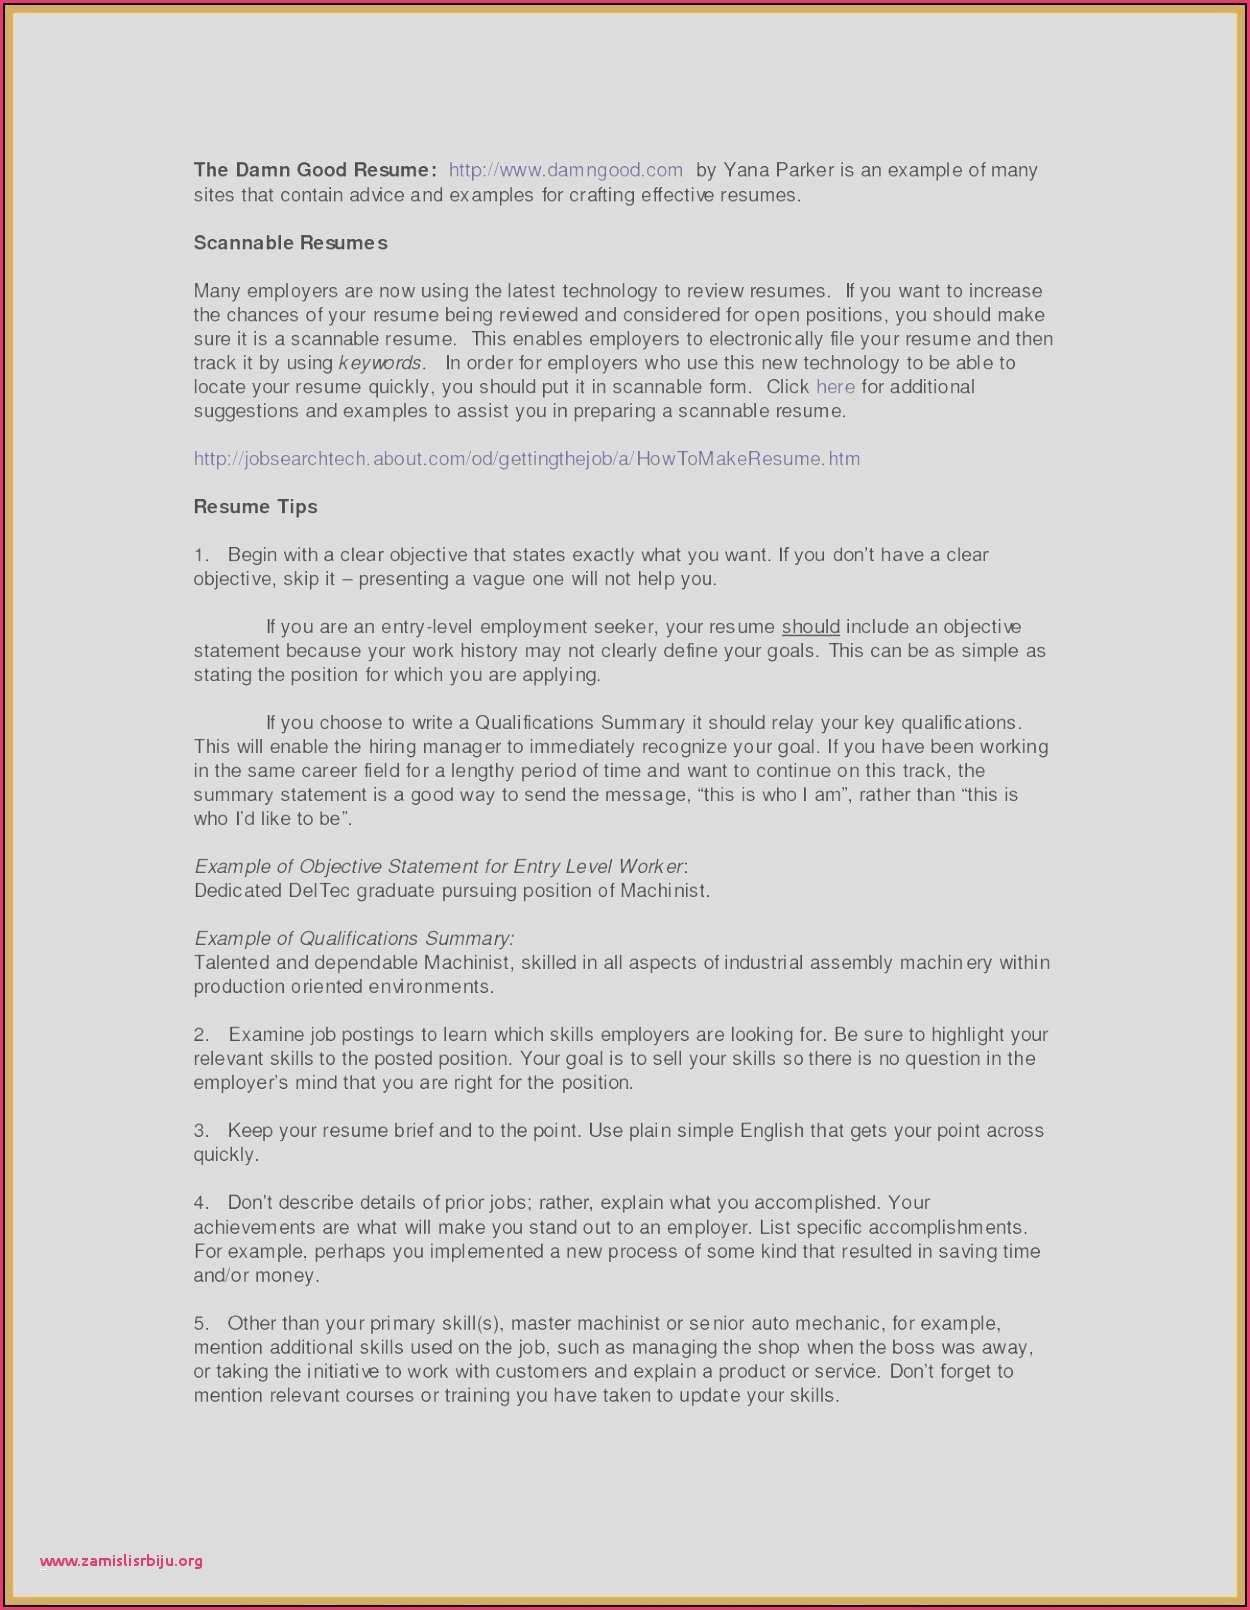 Travel Agency Vision Statement Examples Project Manager Resume